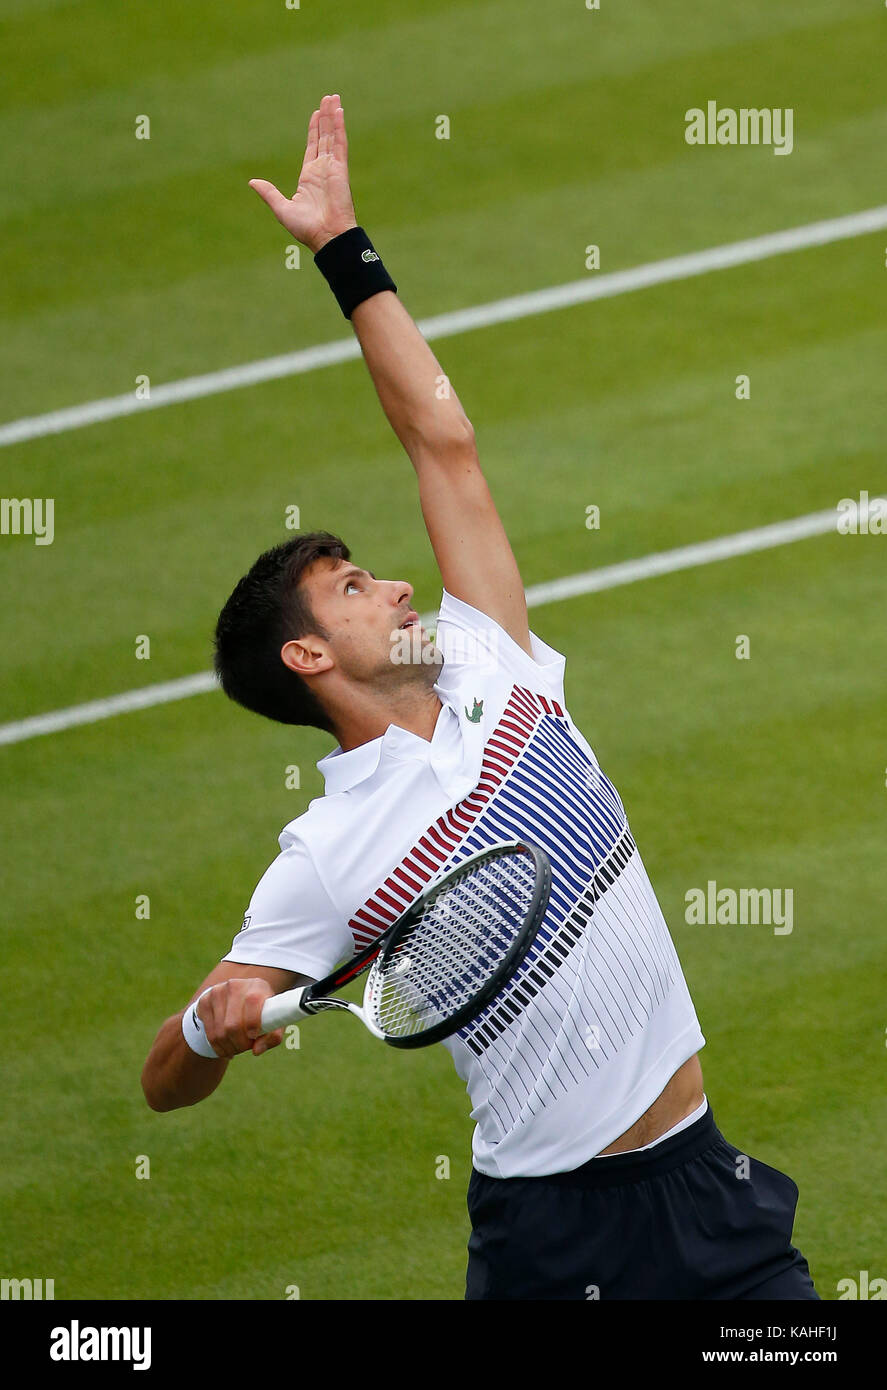 Serbian Novak Djokovic serves against Canadian Vasek Pospisil on day five of the Aegon International at Devonshire - Stock Image